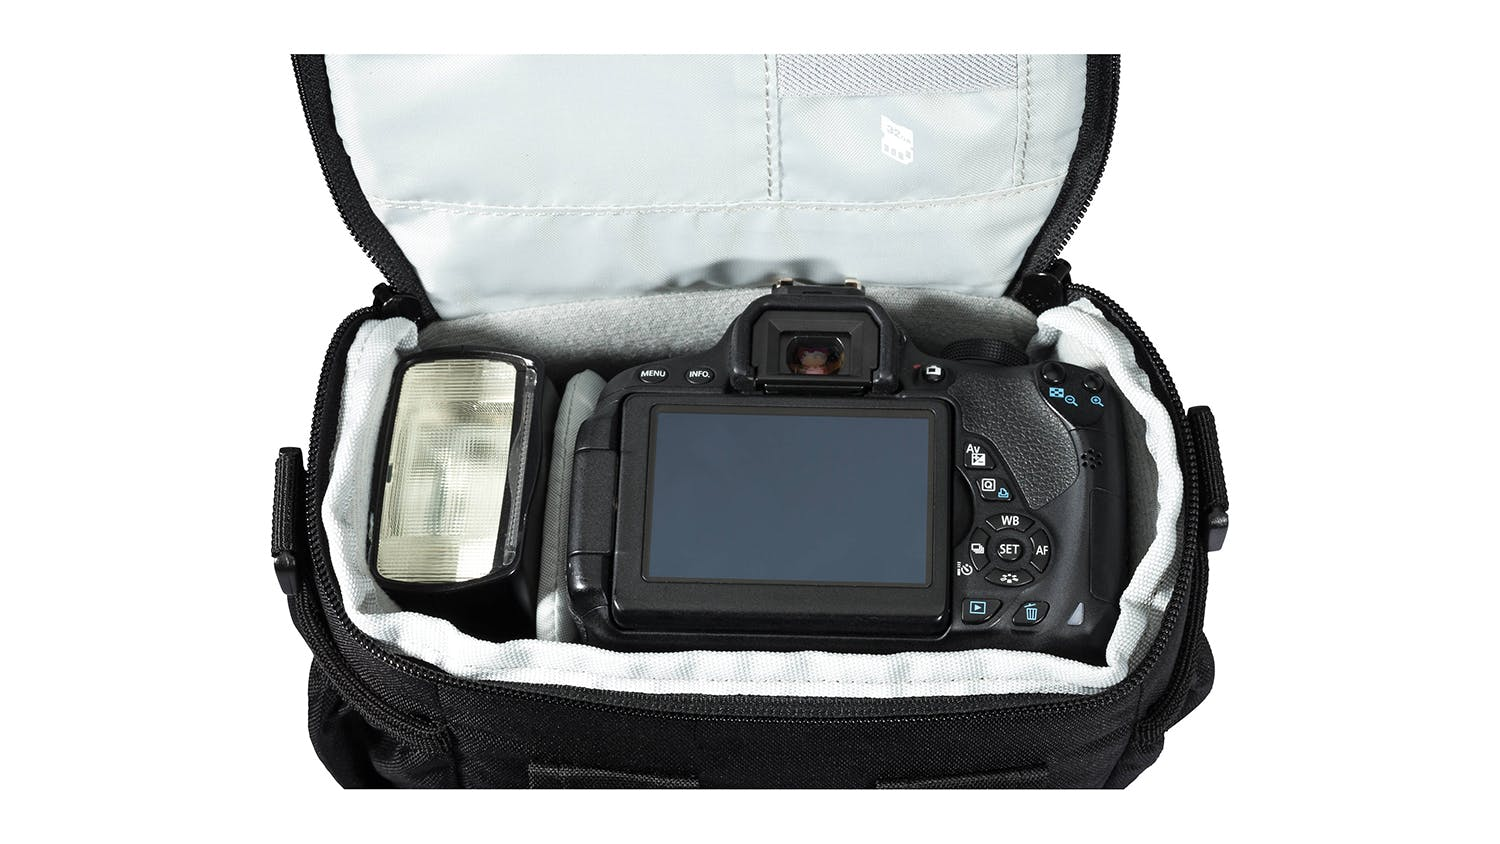 Lowepro Adventura SH 140 II Camera Bag